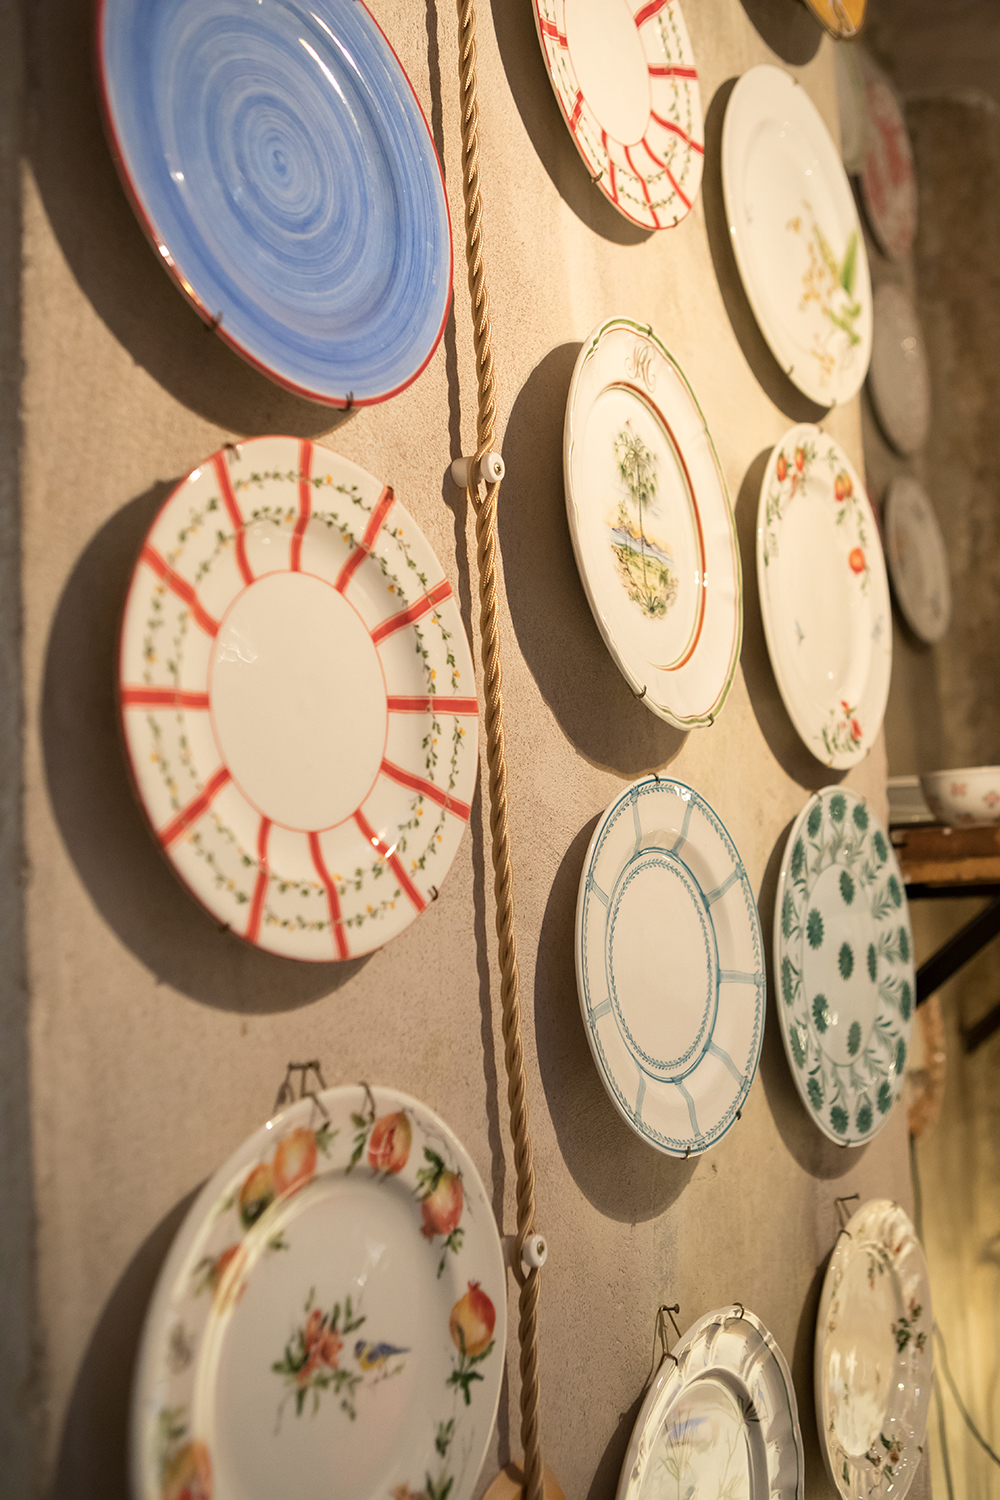 Paravincini ceramics professional profile portrait photography documentary Italy by Aimee Almstead 5.jpg